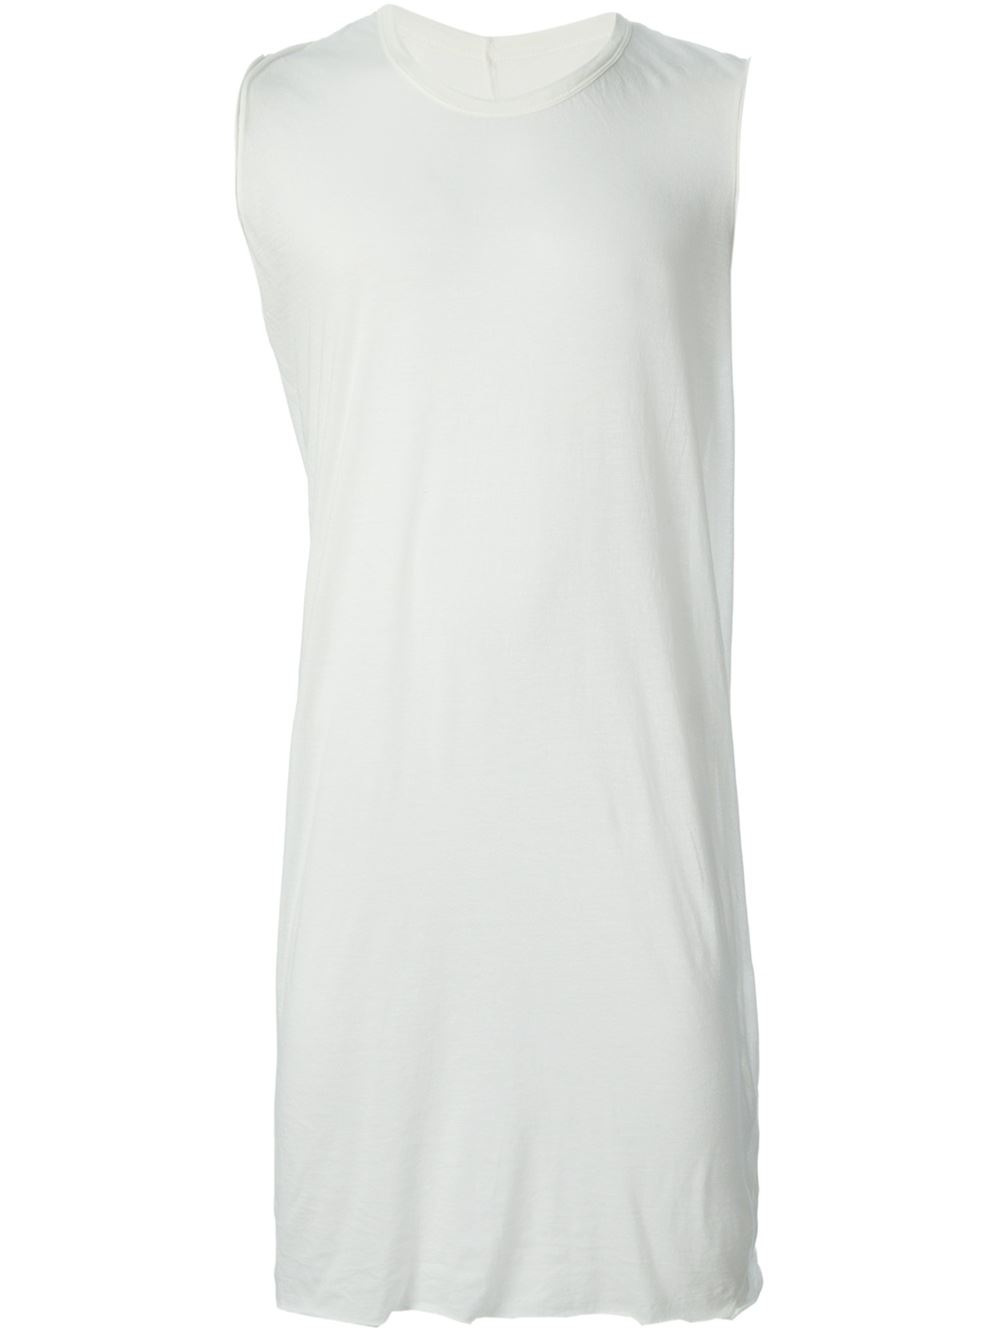 Rick owens Long Tank Top in White for Men | Lyst